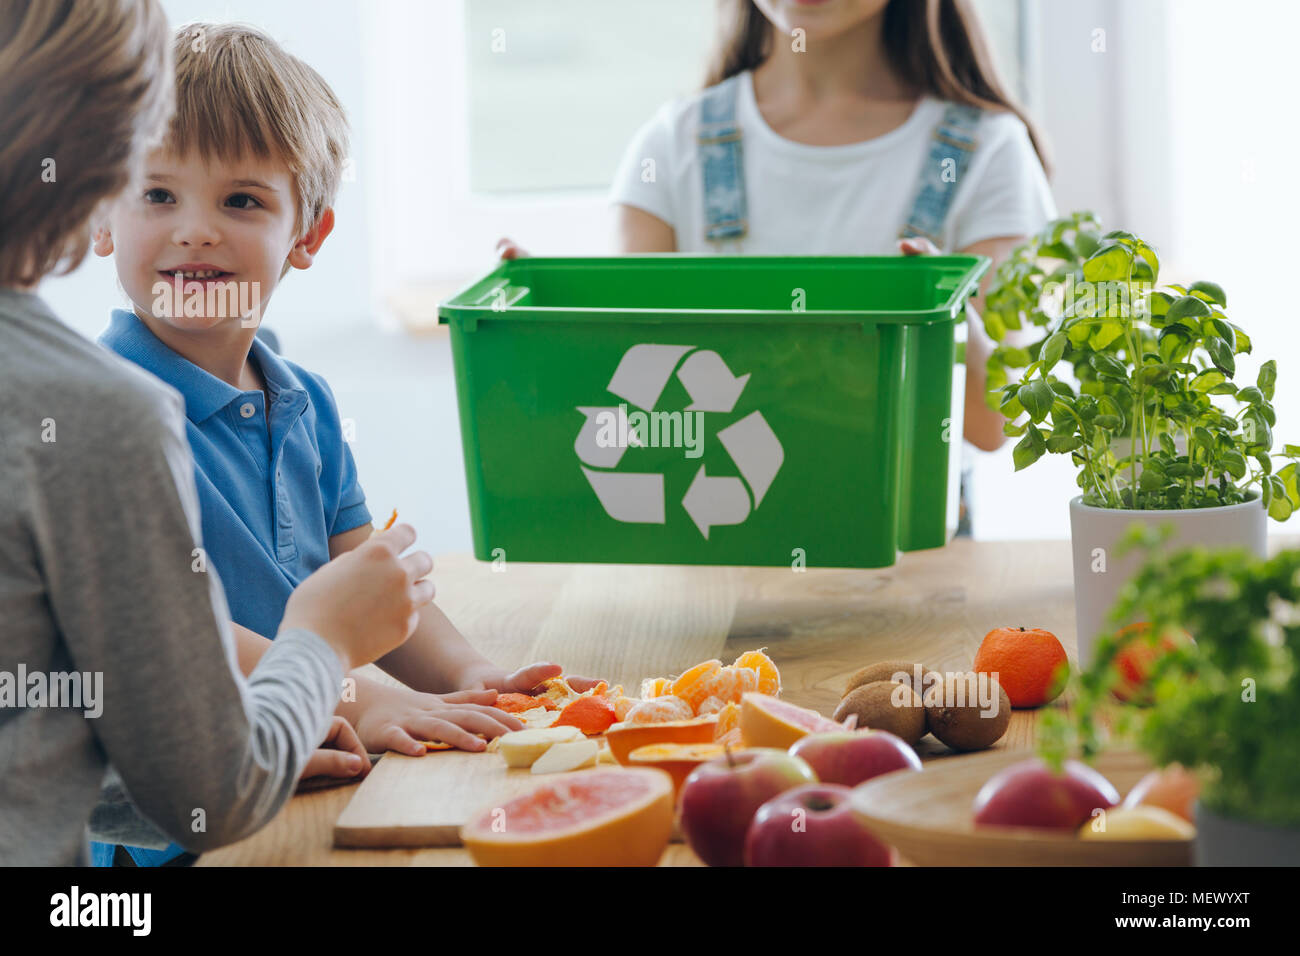 Kids in the kitchen throwing out fruit remains into a green bin for biodegradable waste - Stock Image